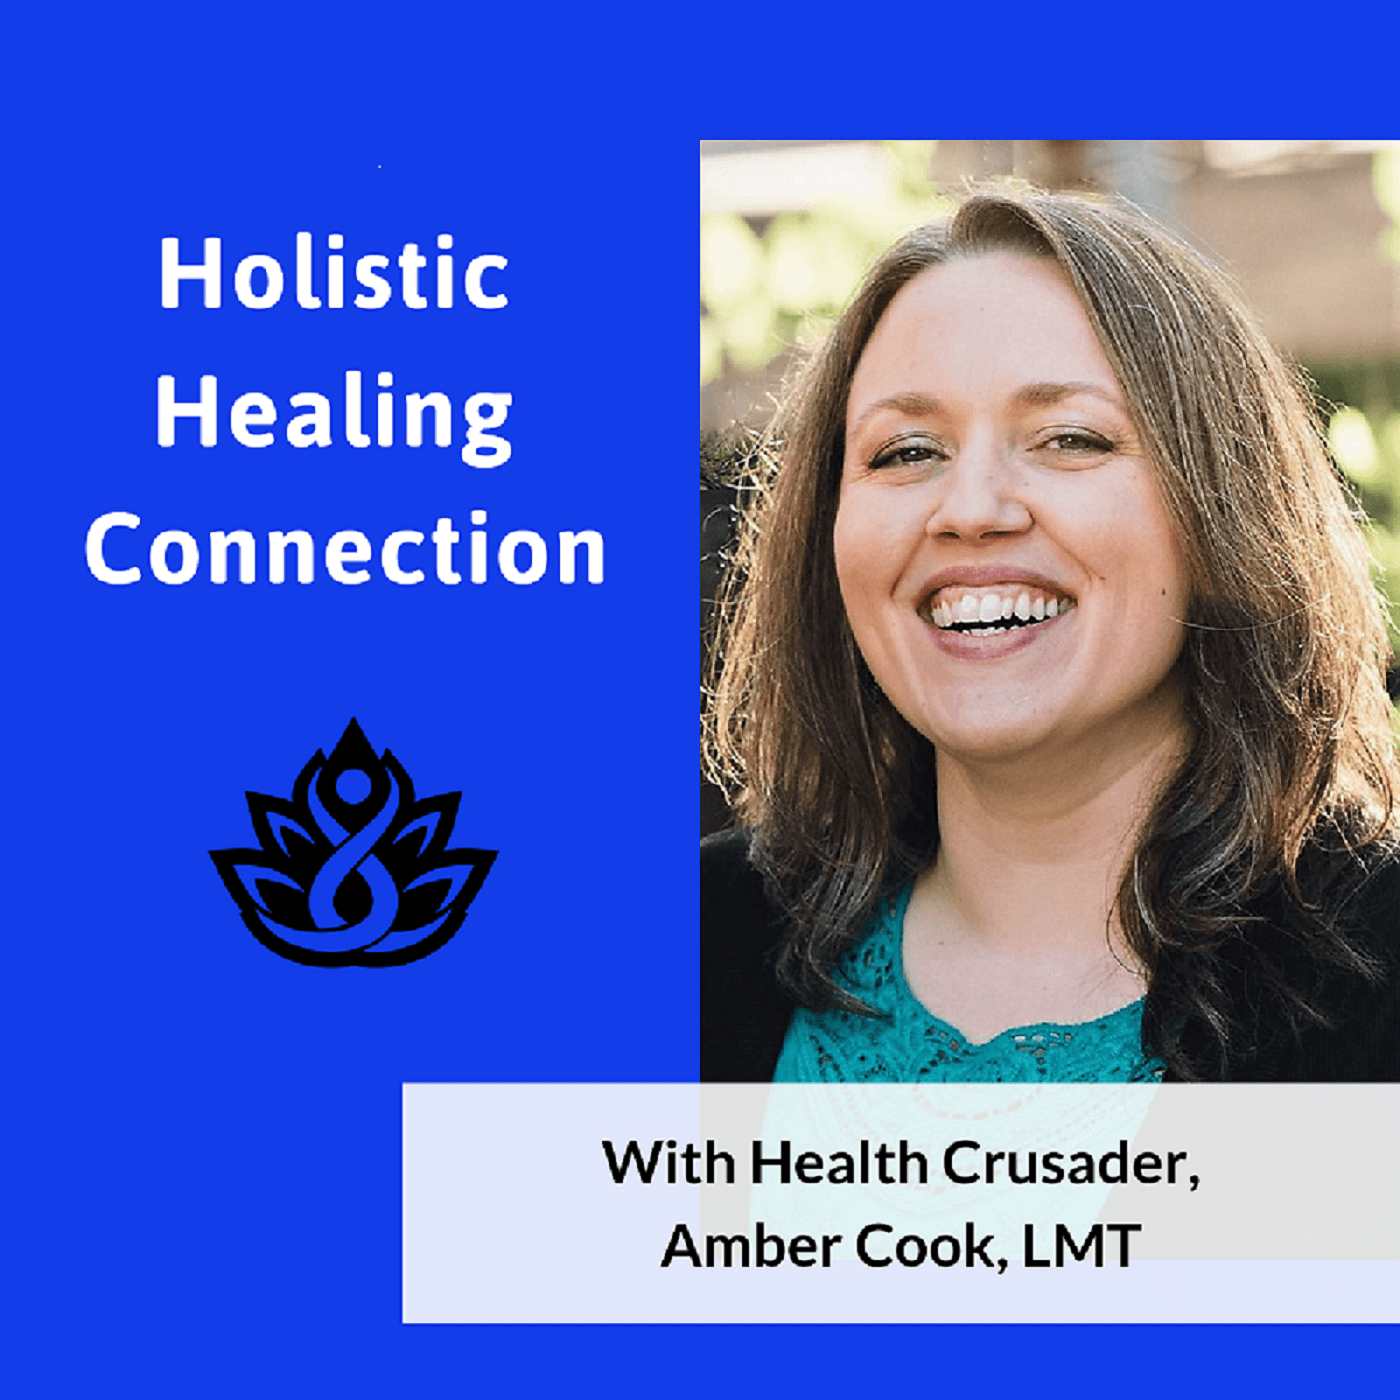 Holistic Healing Connection